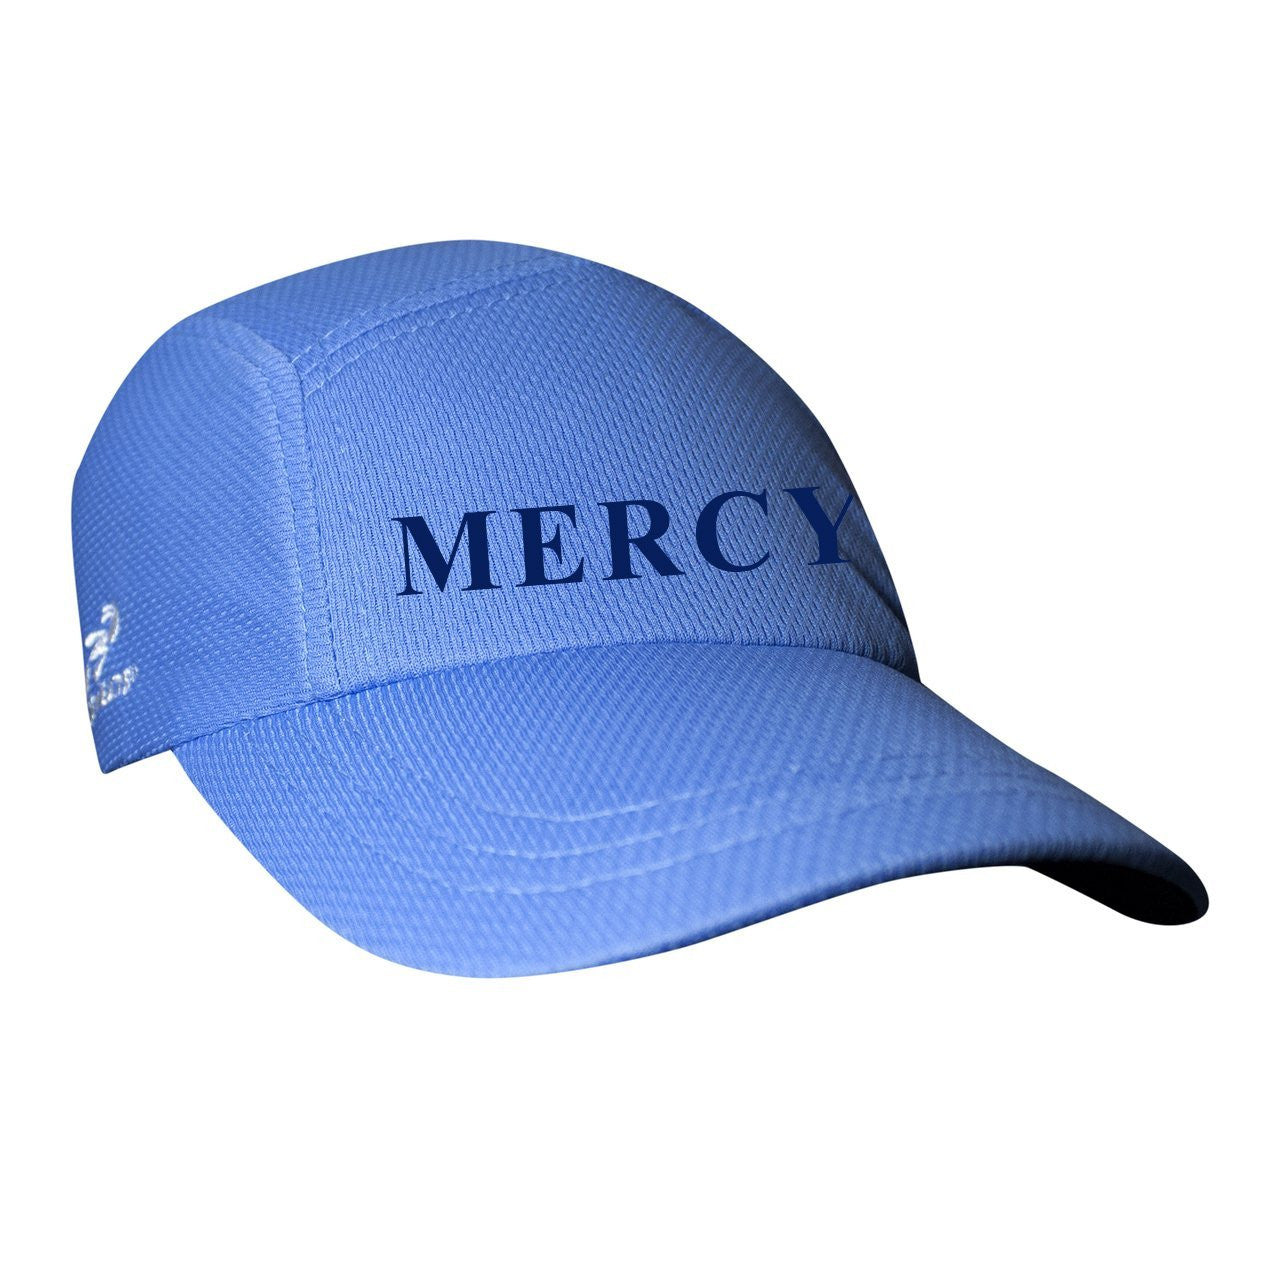 Mercy Crew Team Headsweats Performance Hat - Light Blue